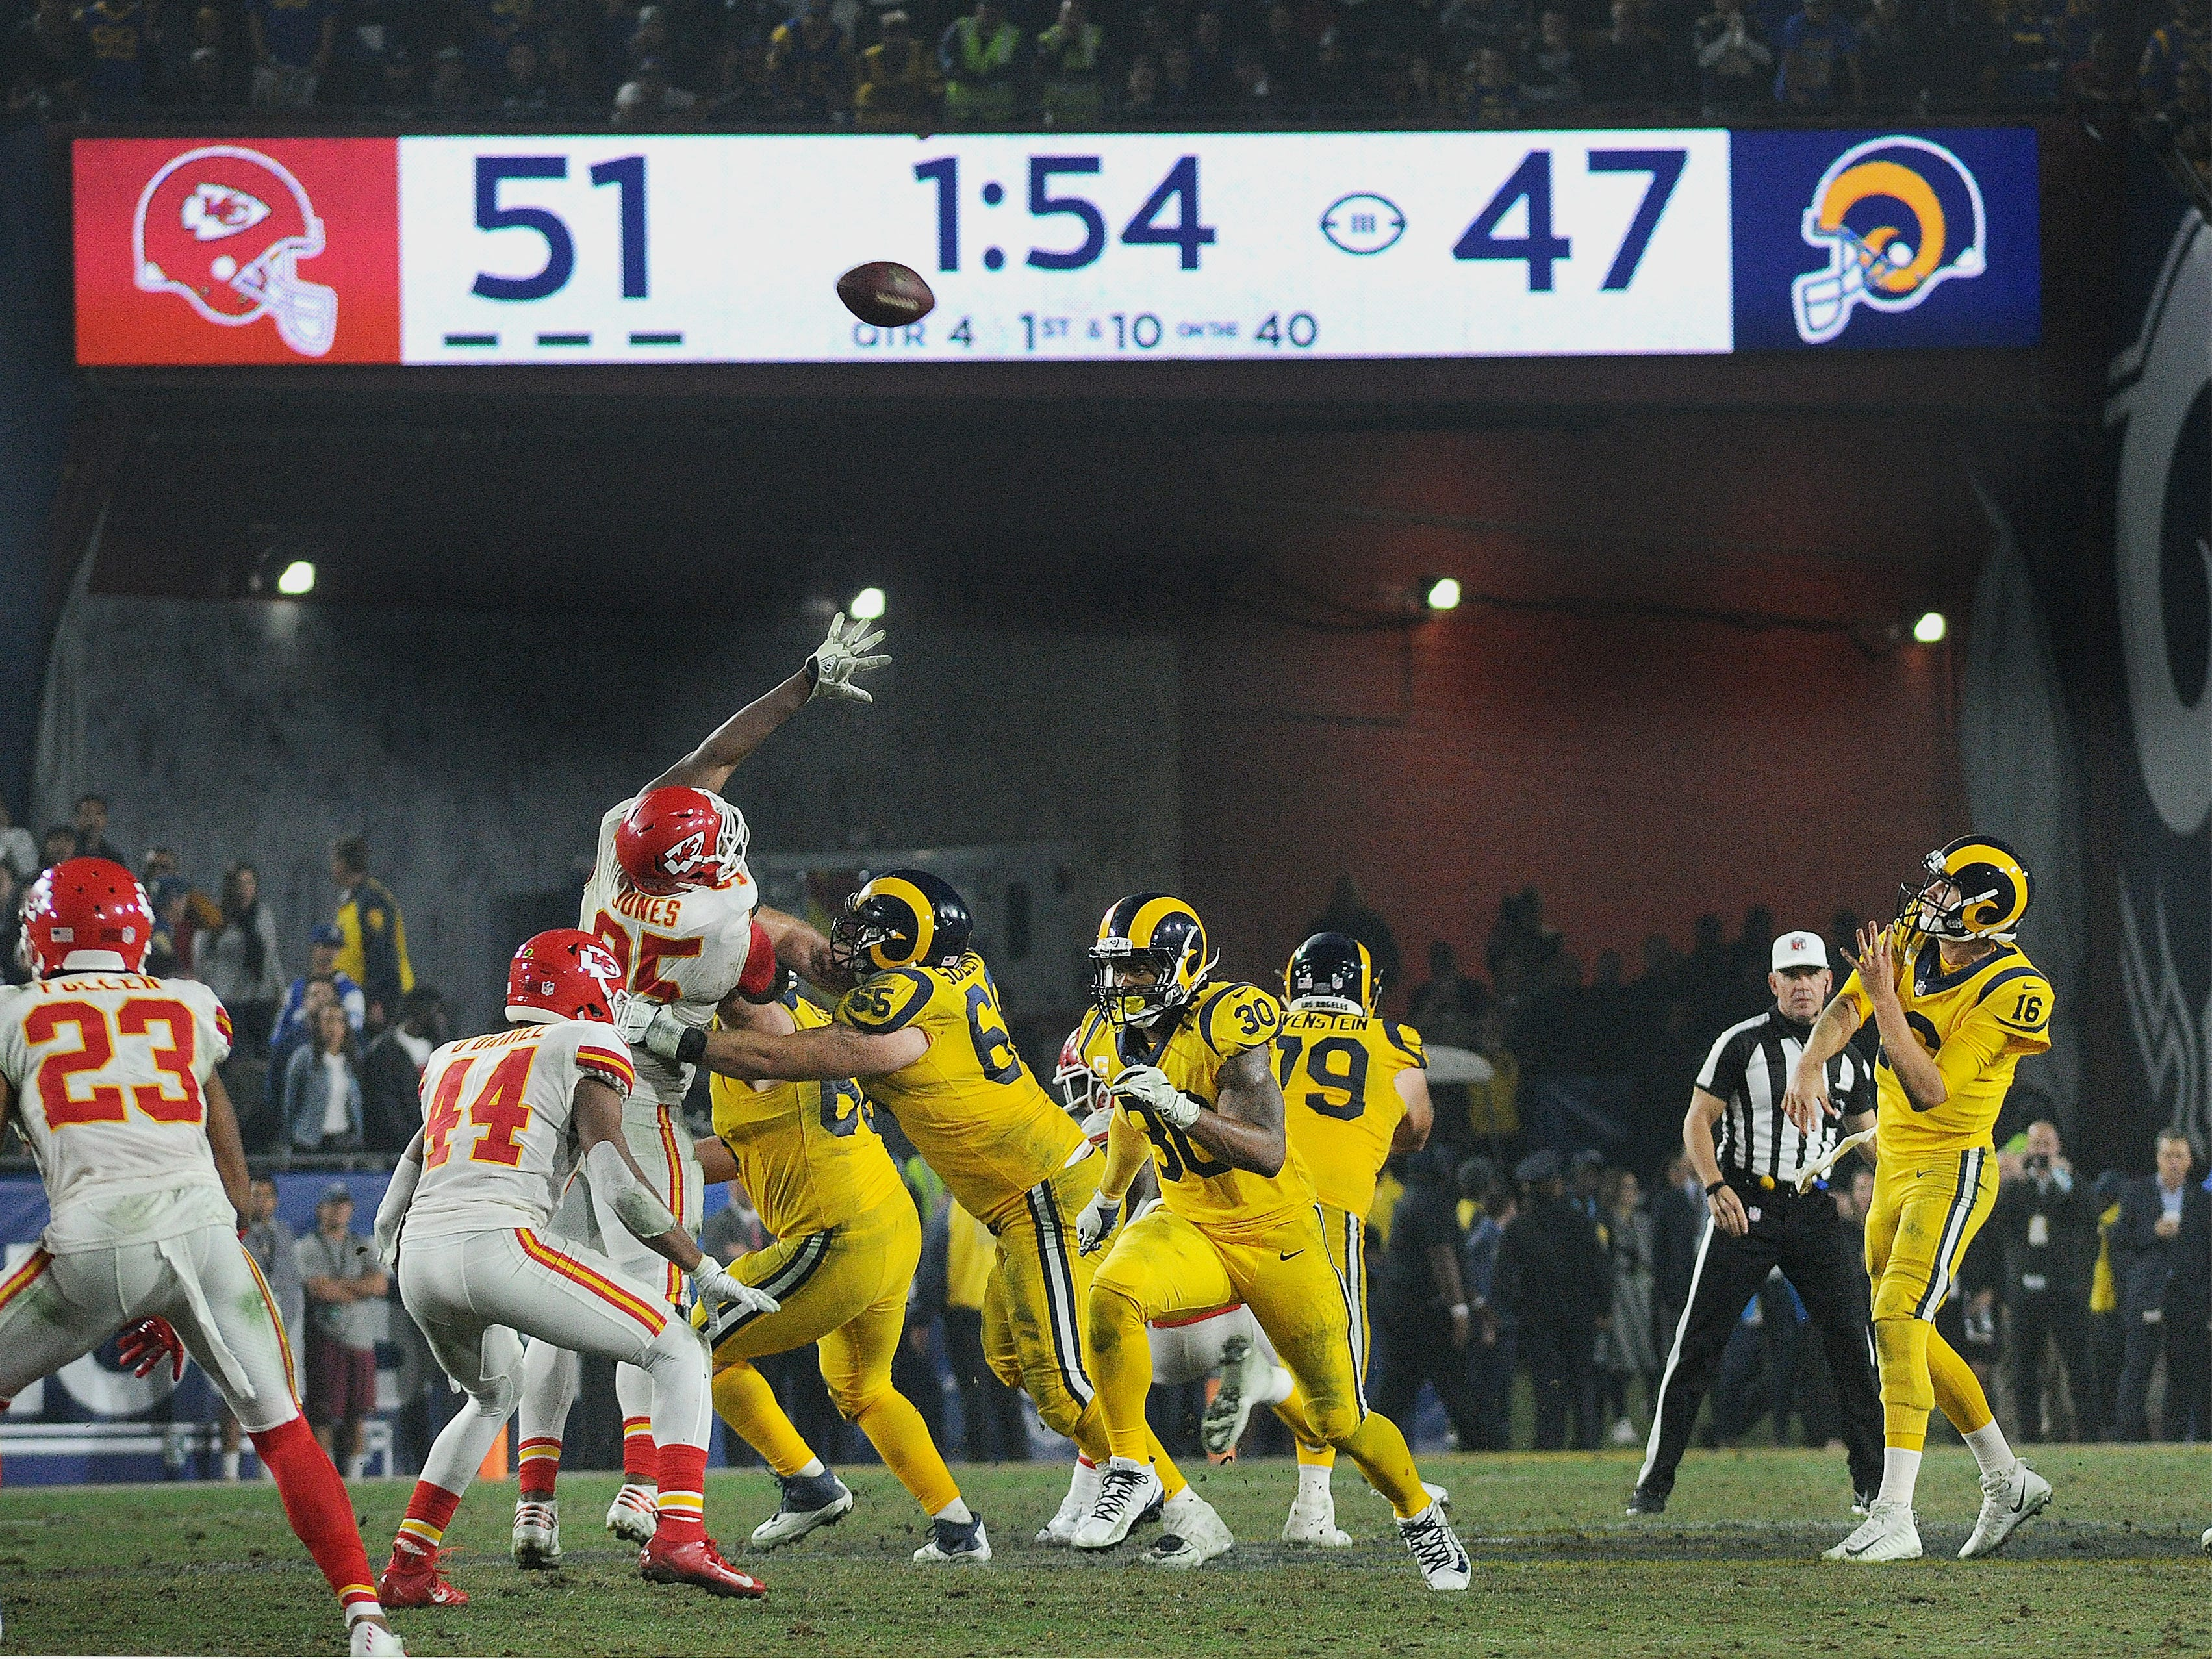 Rams quarterback Jared Goff, right, throws the winning touchdown pass to Gerald Everett with 1:54 left in the game against the Kansas City Chiefs on Monday night. The Rams won 54-51. The combined points was the third highest scoring game in NFL history and the highest scoring game for a Monday night game.